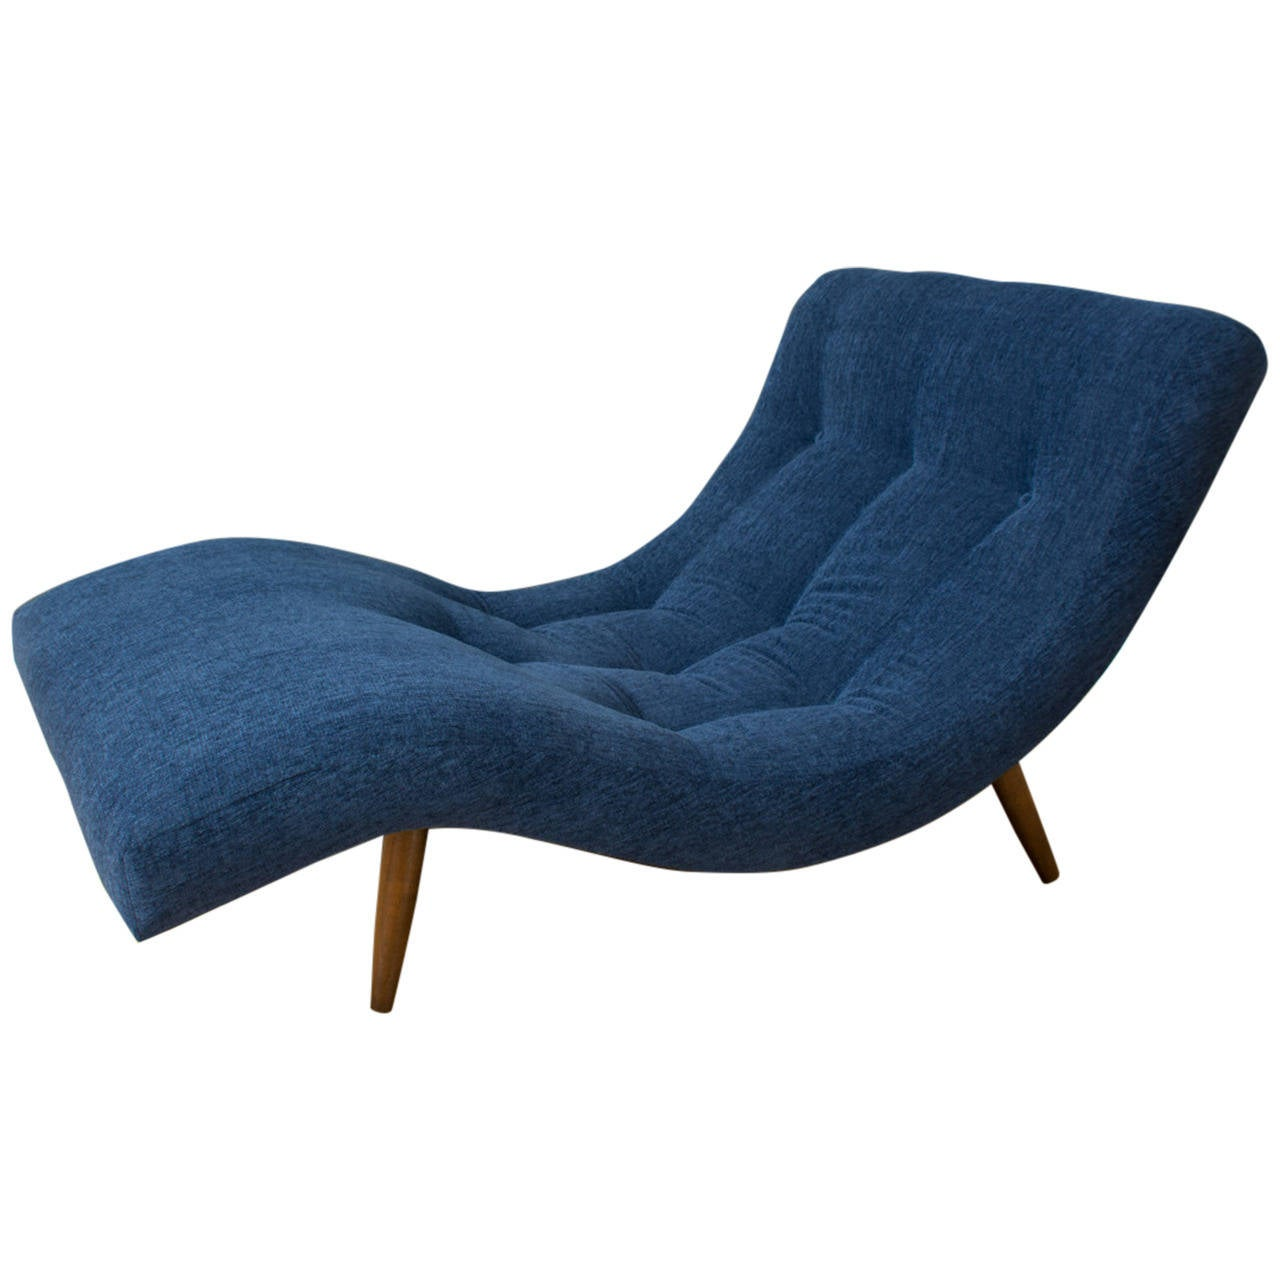 Vintage mid century chaise lounge chair by adrian pearsall for Chaise furniture